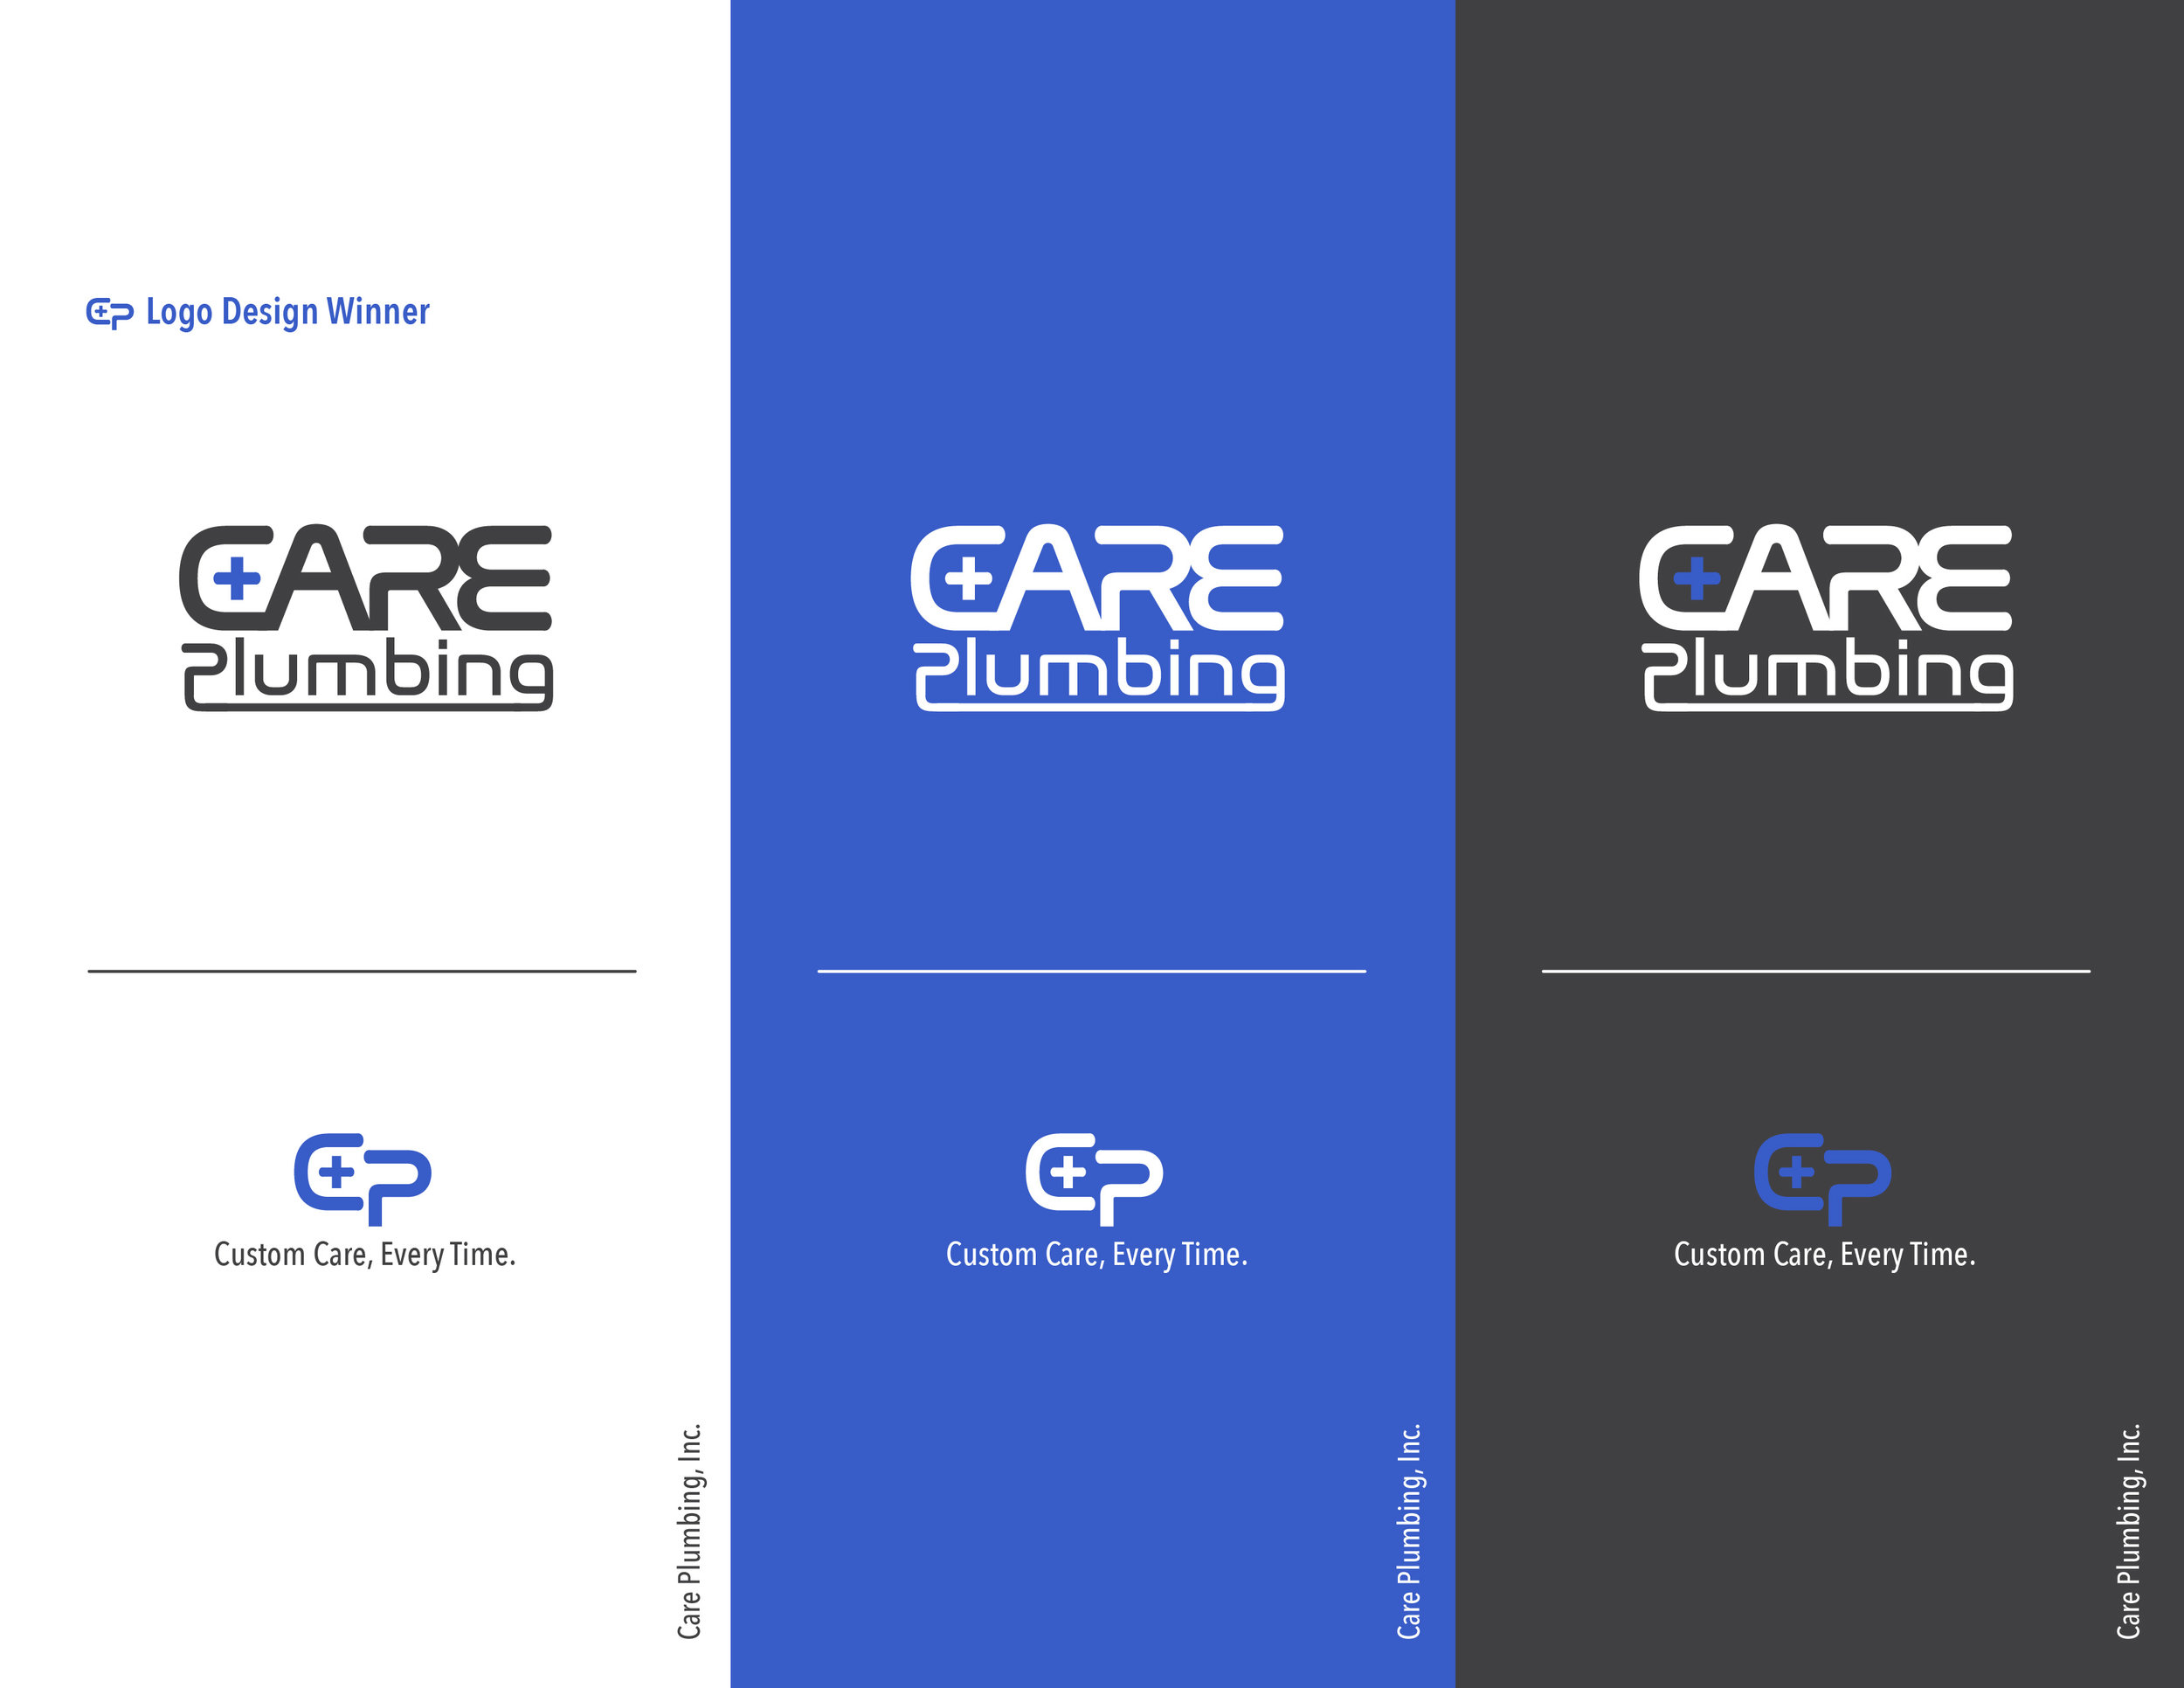 Care Plumbing  - Graphic + Brand Design